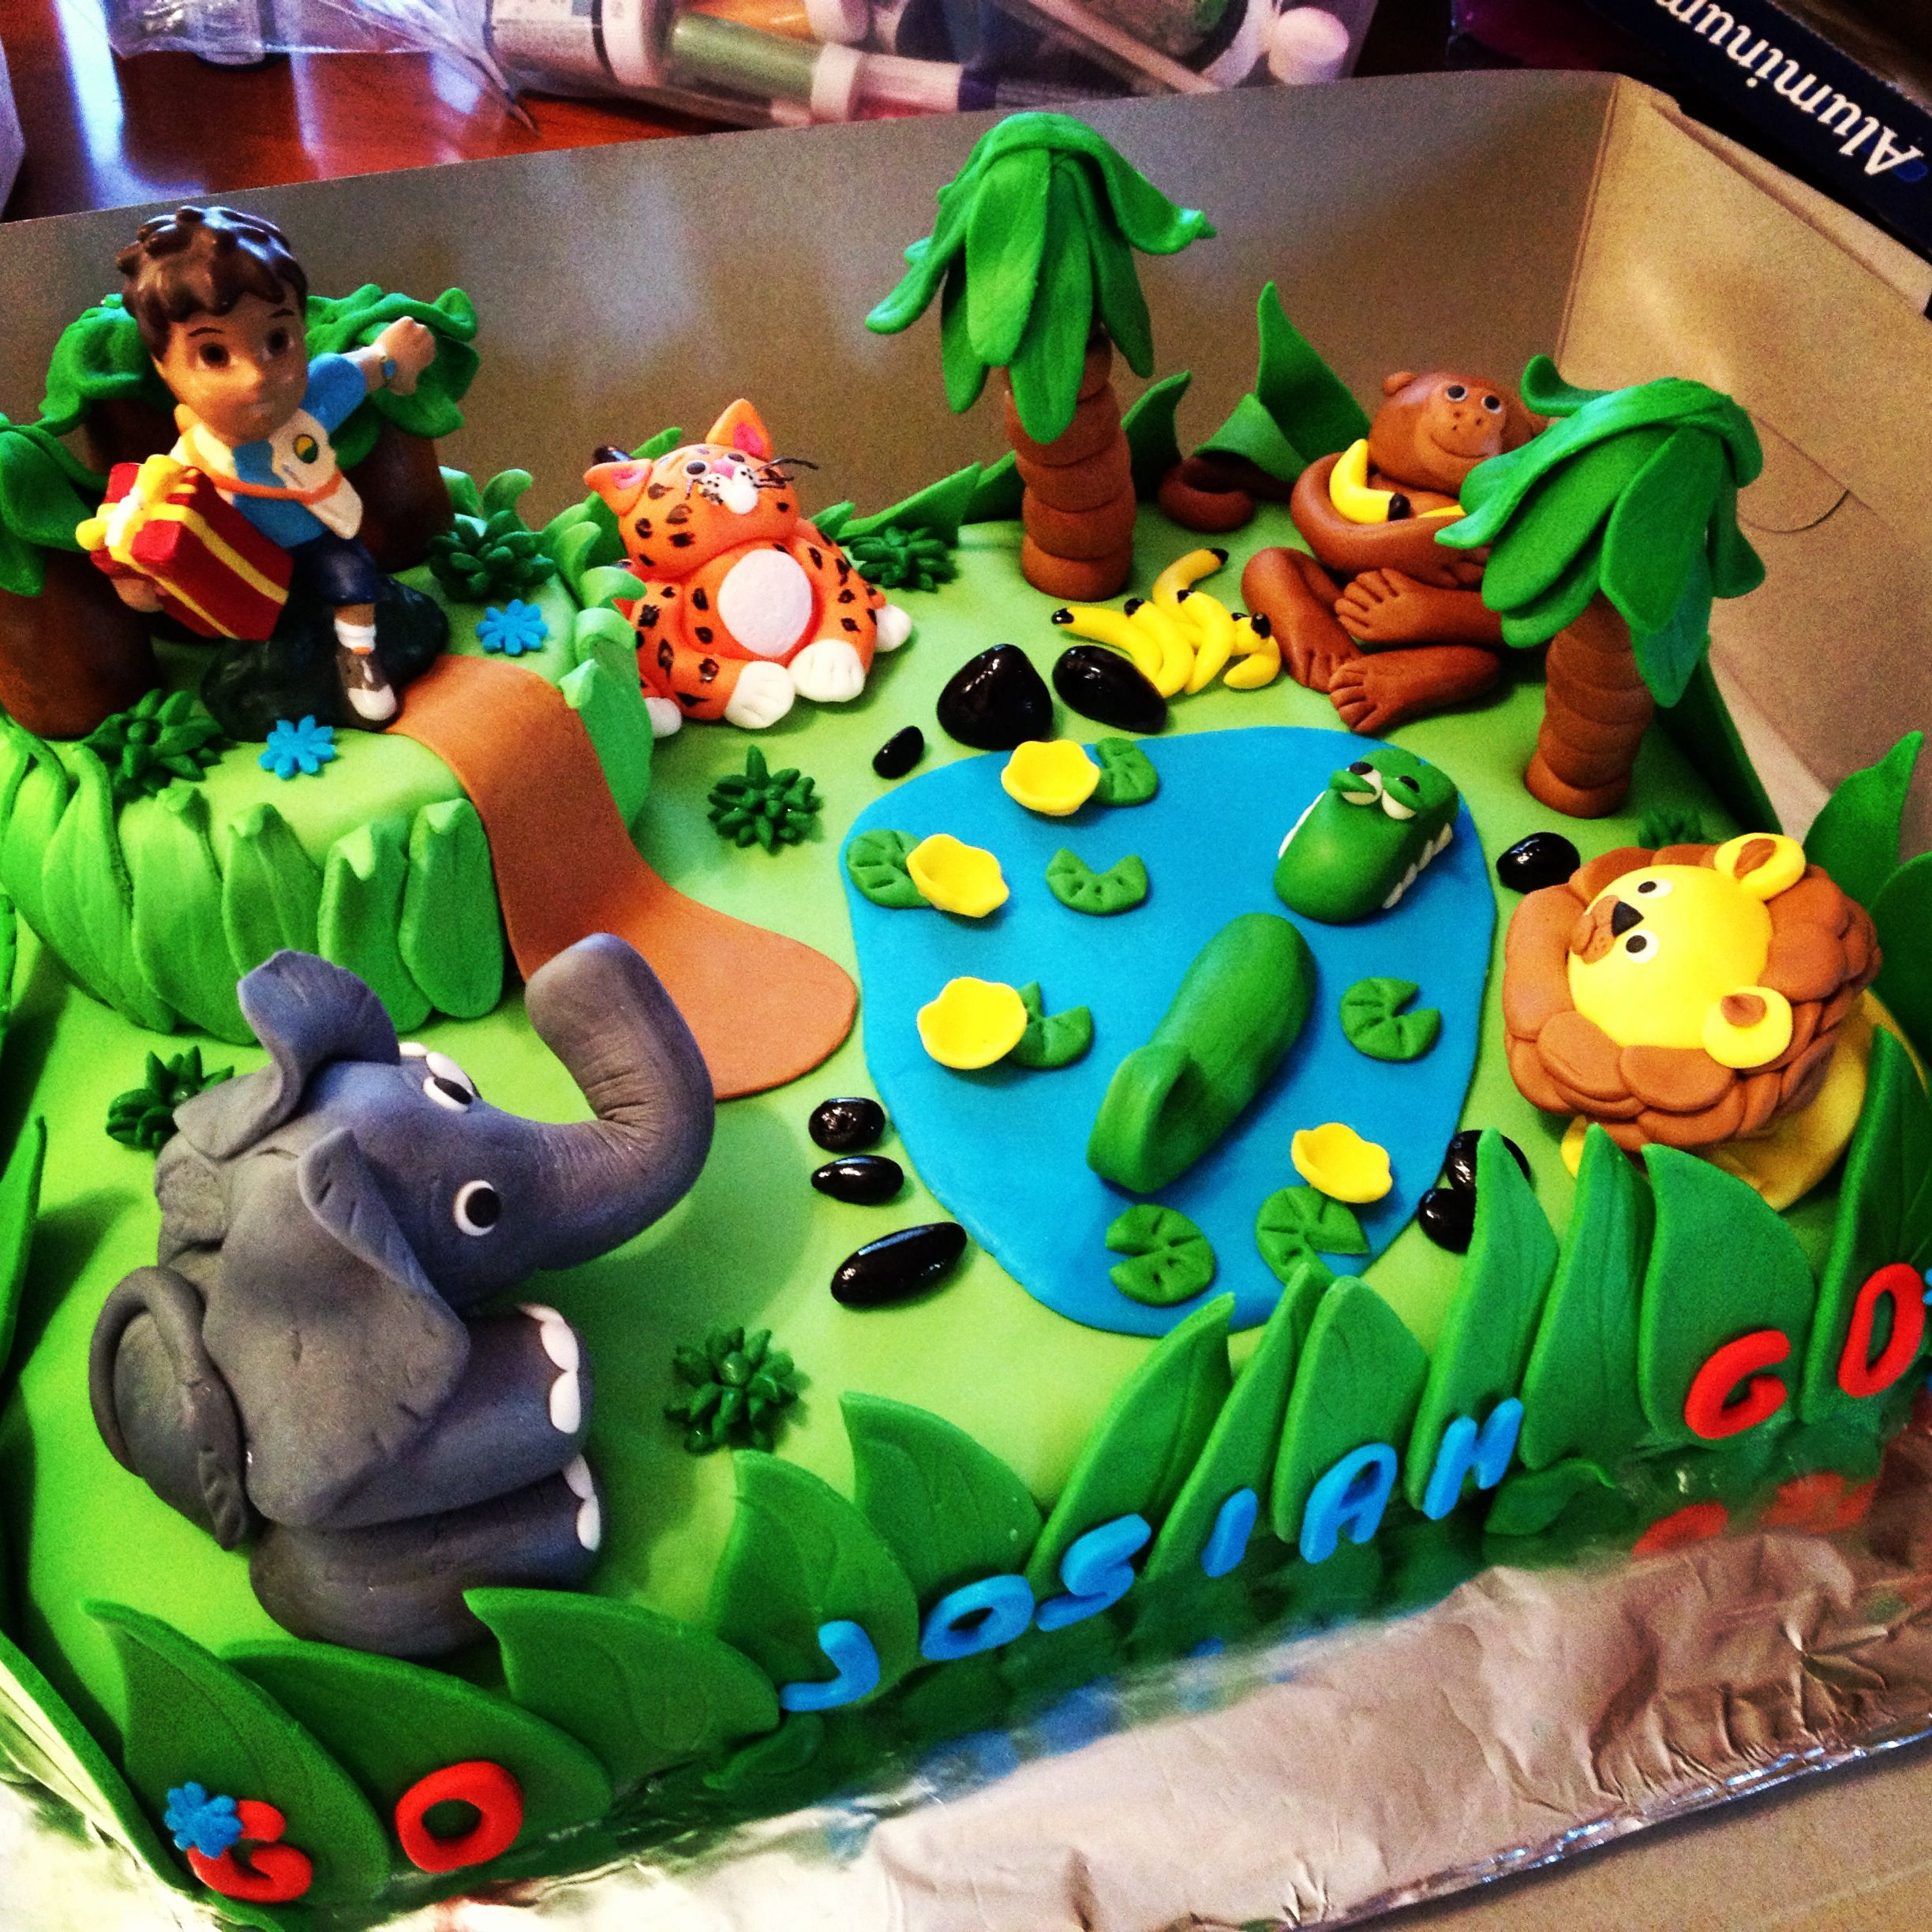 Go Diego Go Birthday Cake Made By Judy Walker Boy Birthday Cake - Go diego go birthday cake